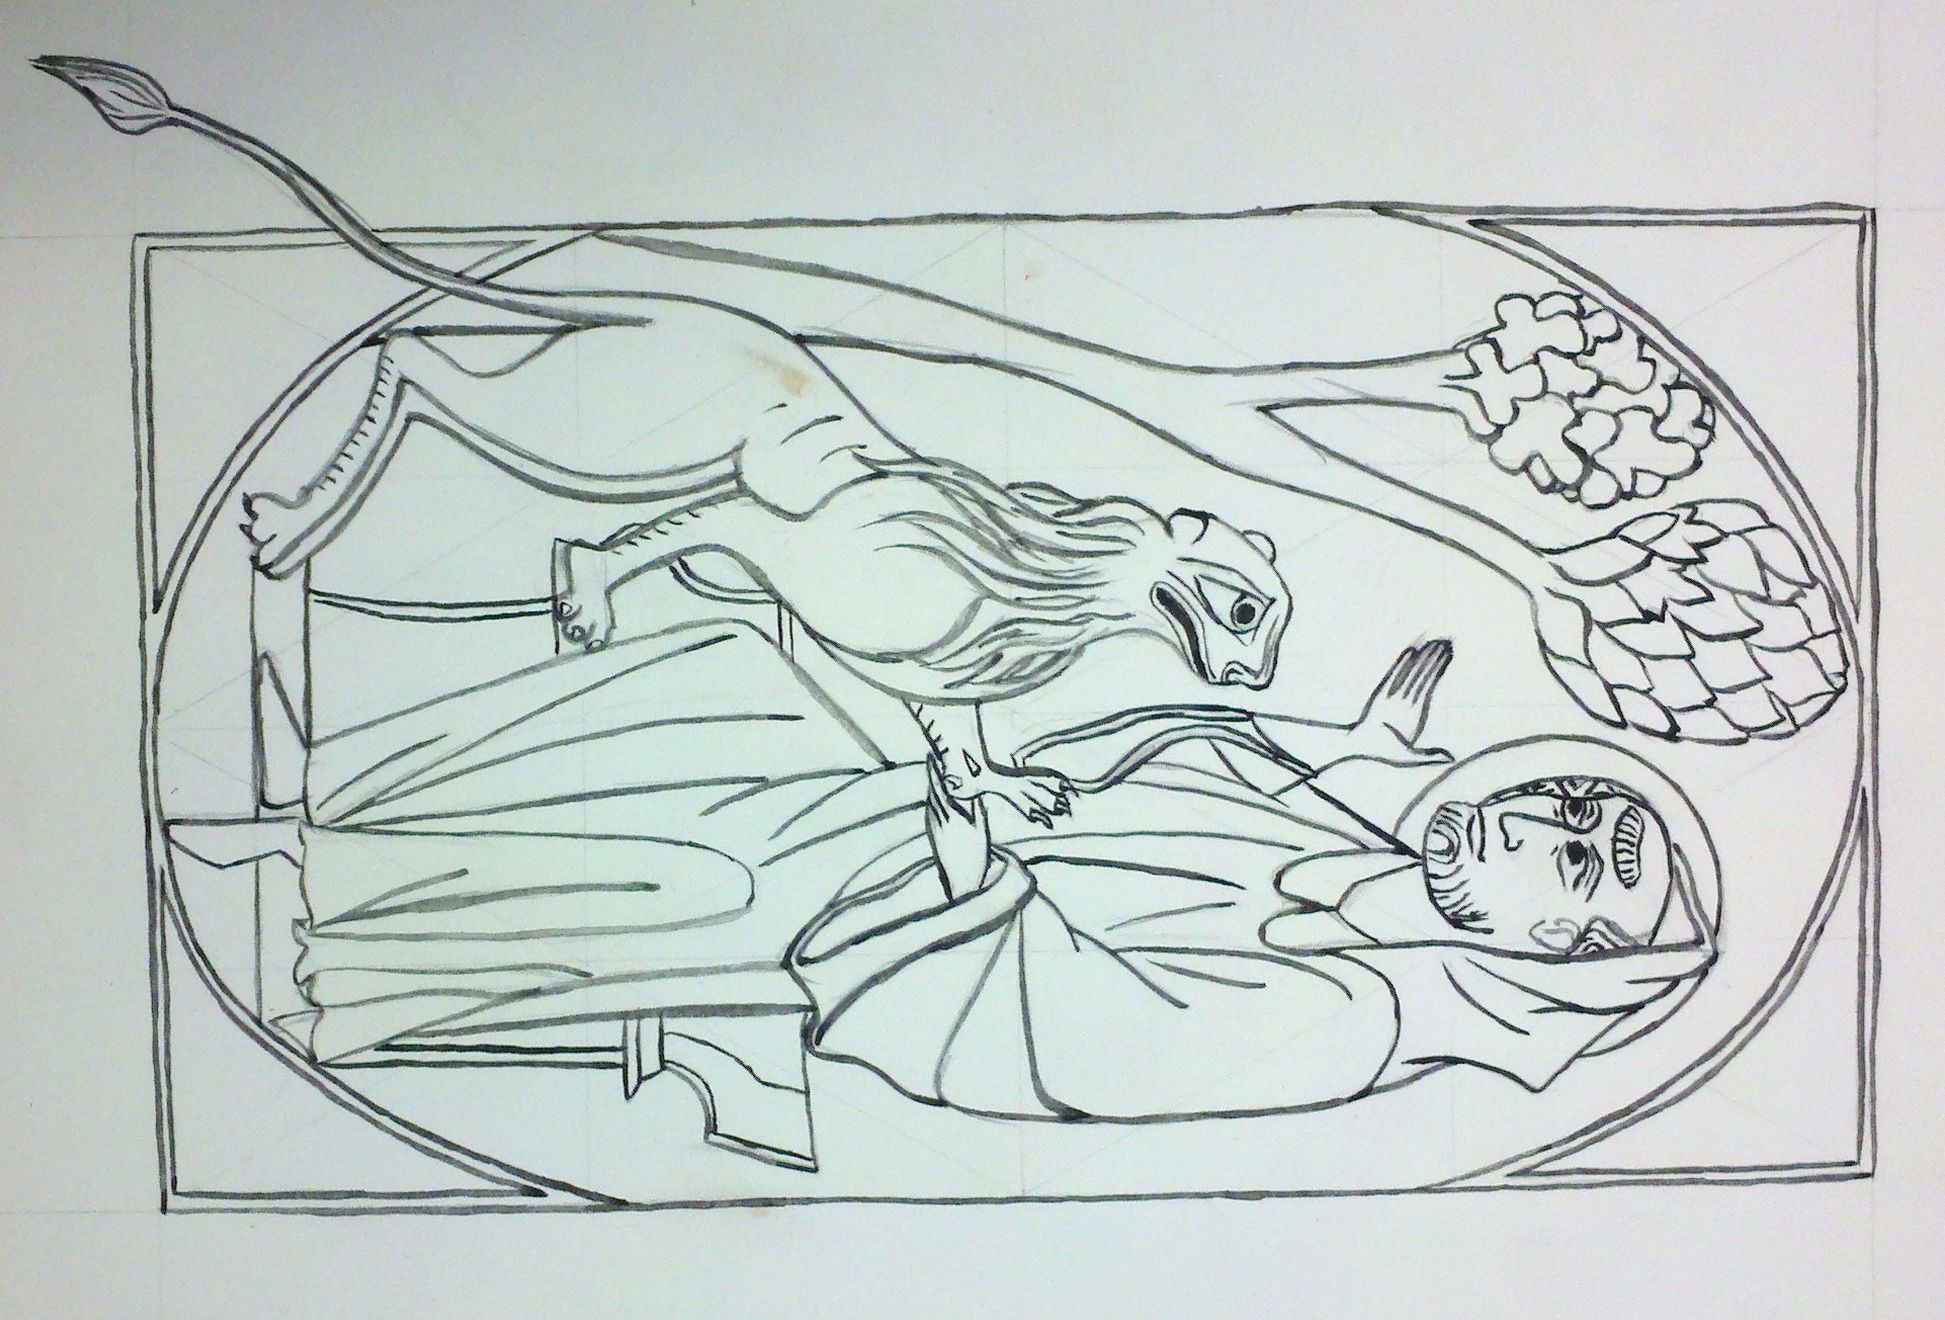 St Jerome Coloring Page St Jerome Sketches Coloring Pages